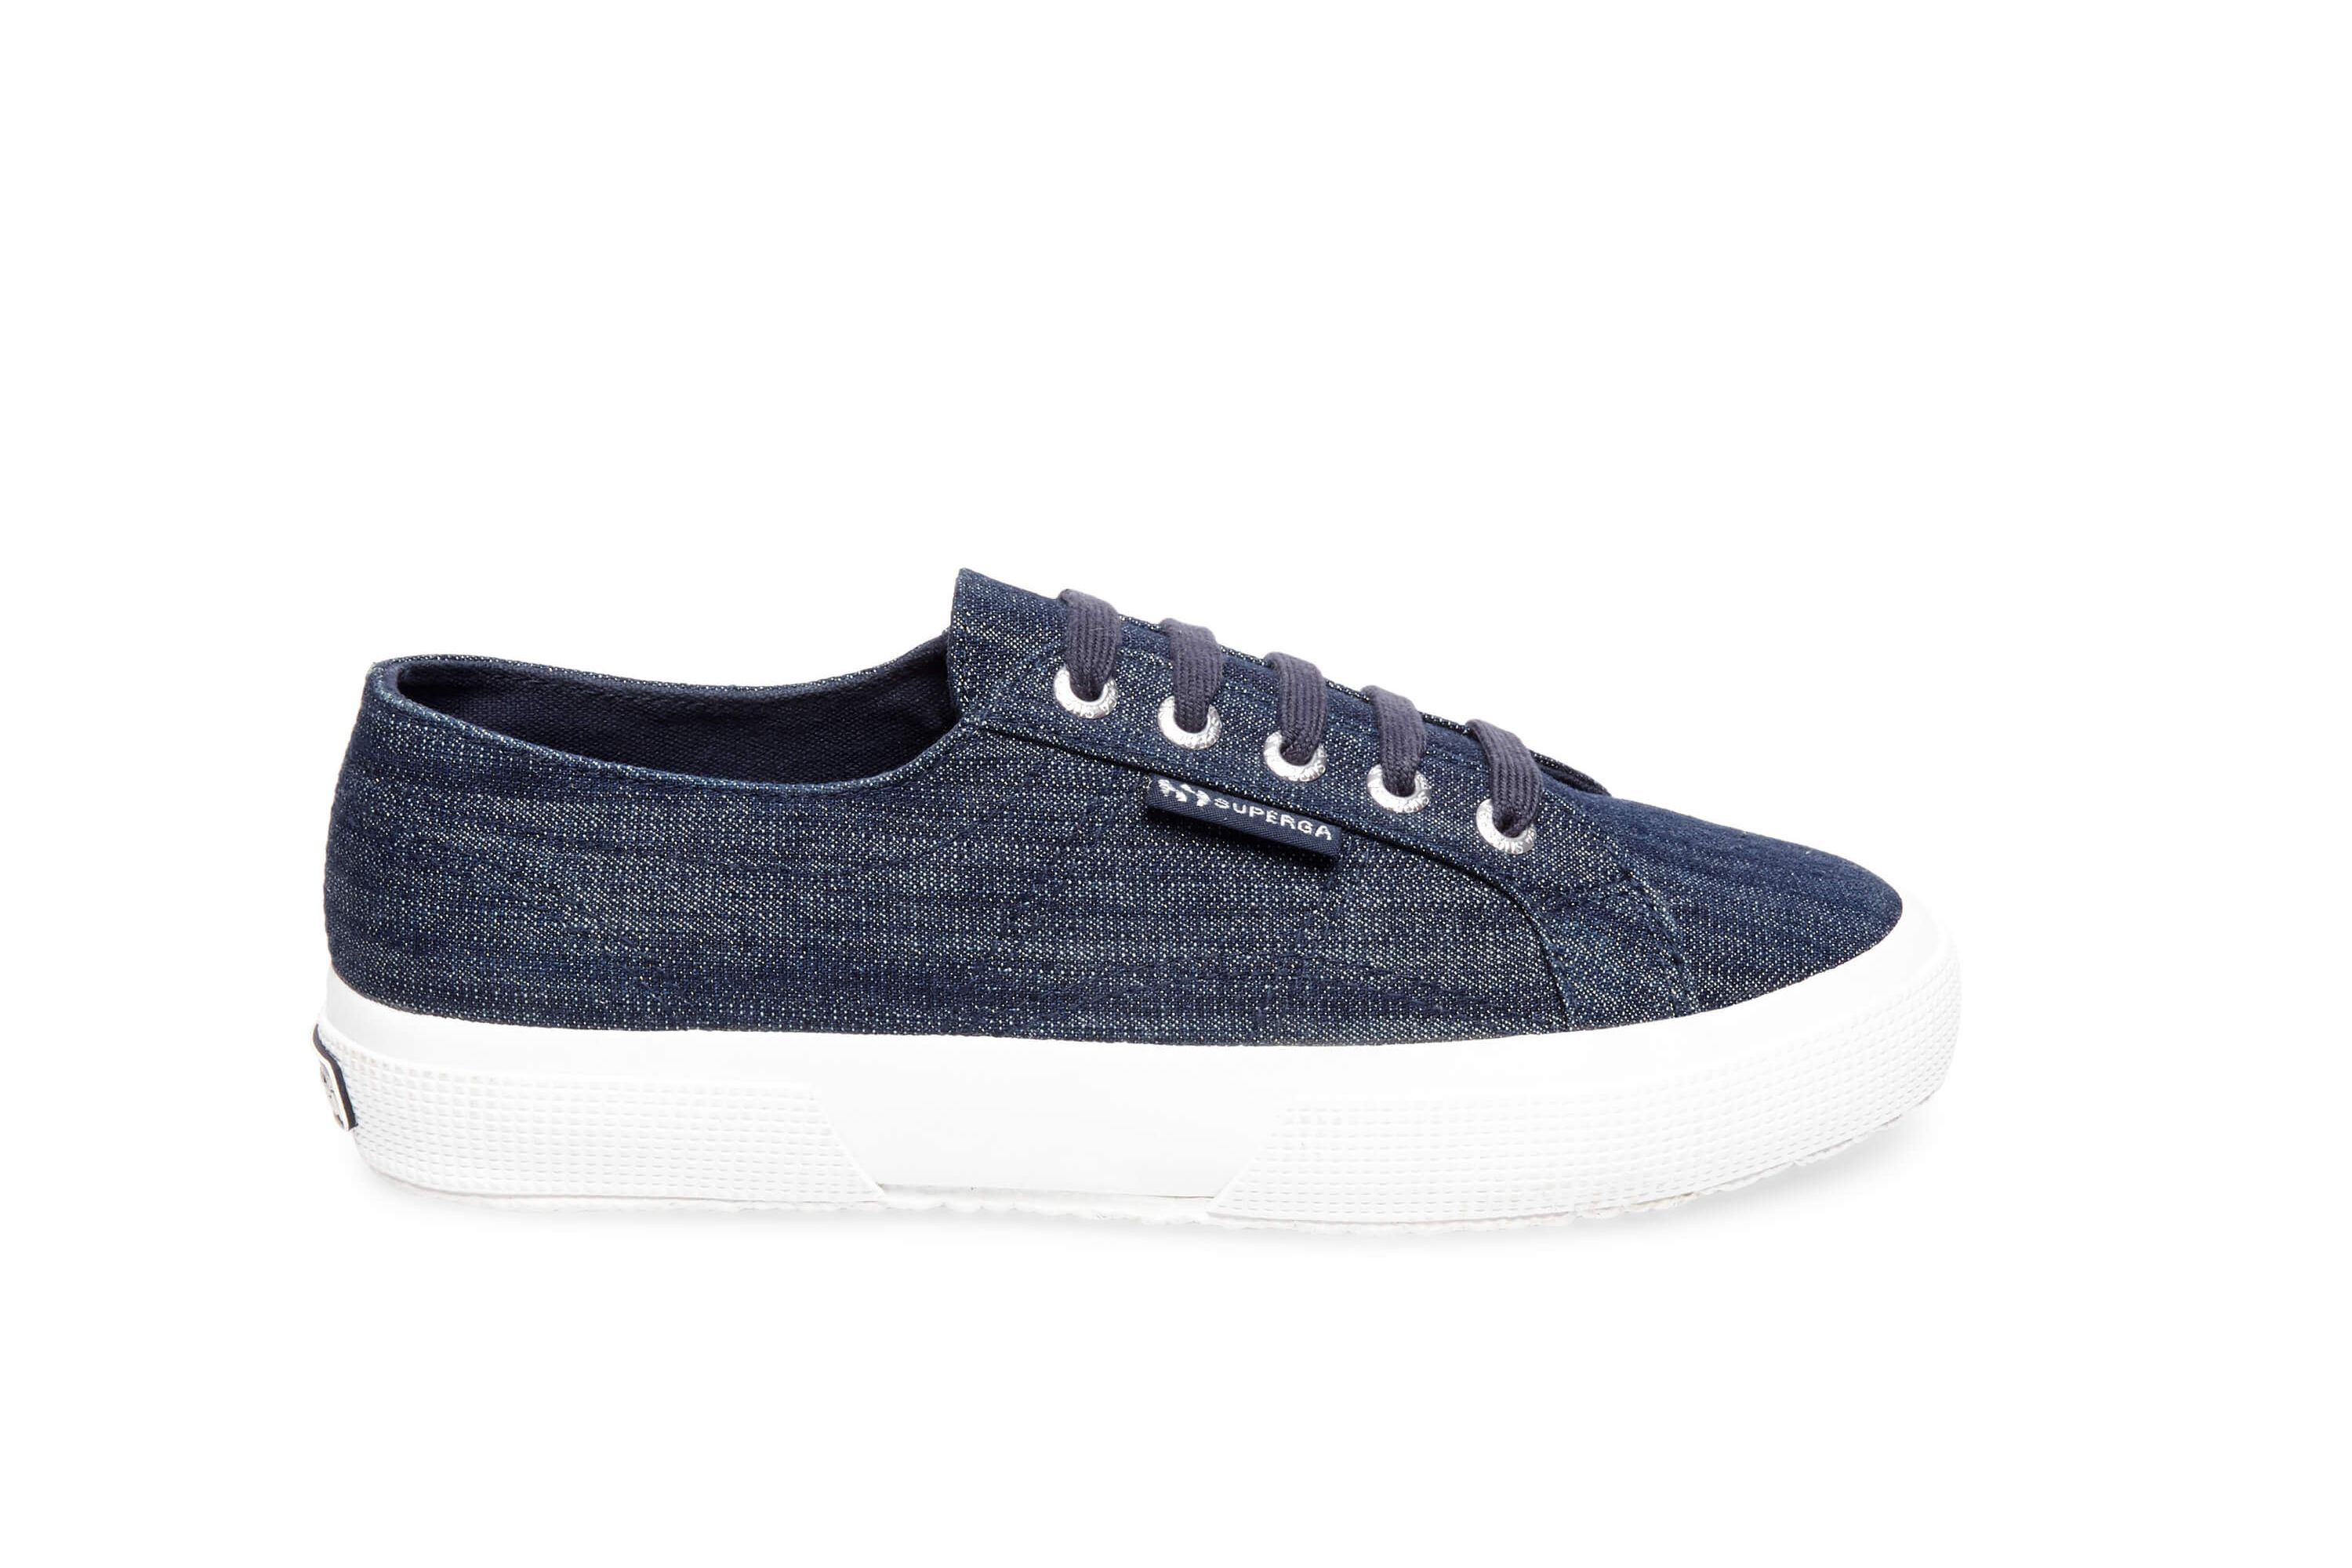 Clearance Footaction 2018 New Online Superga Women's 2750-Denimshinyw Trainers udc84A